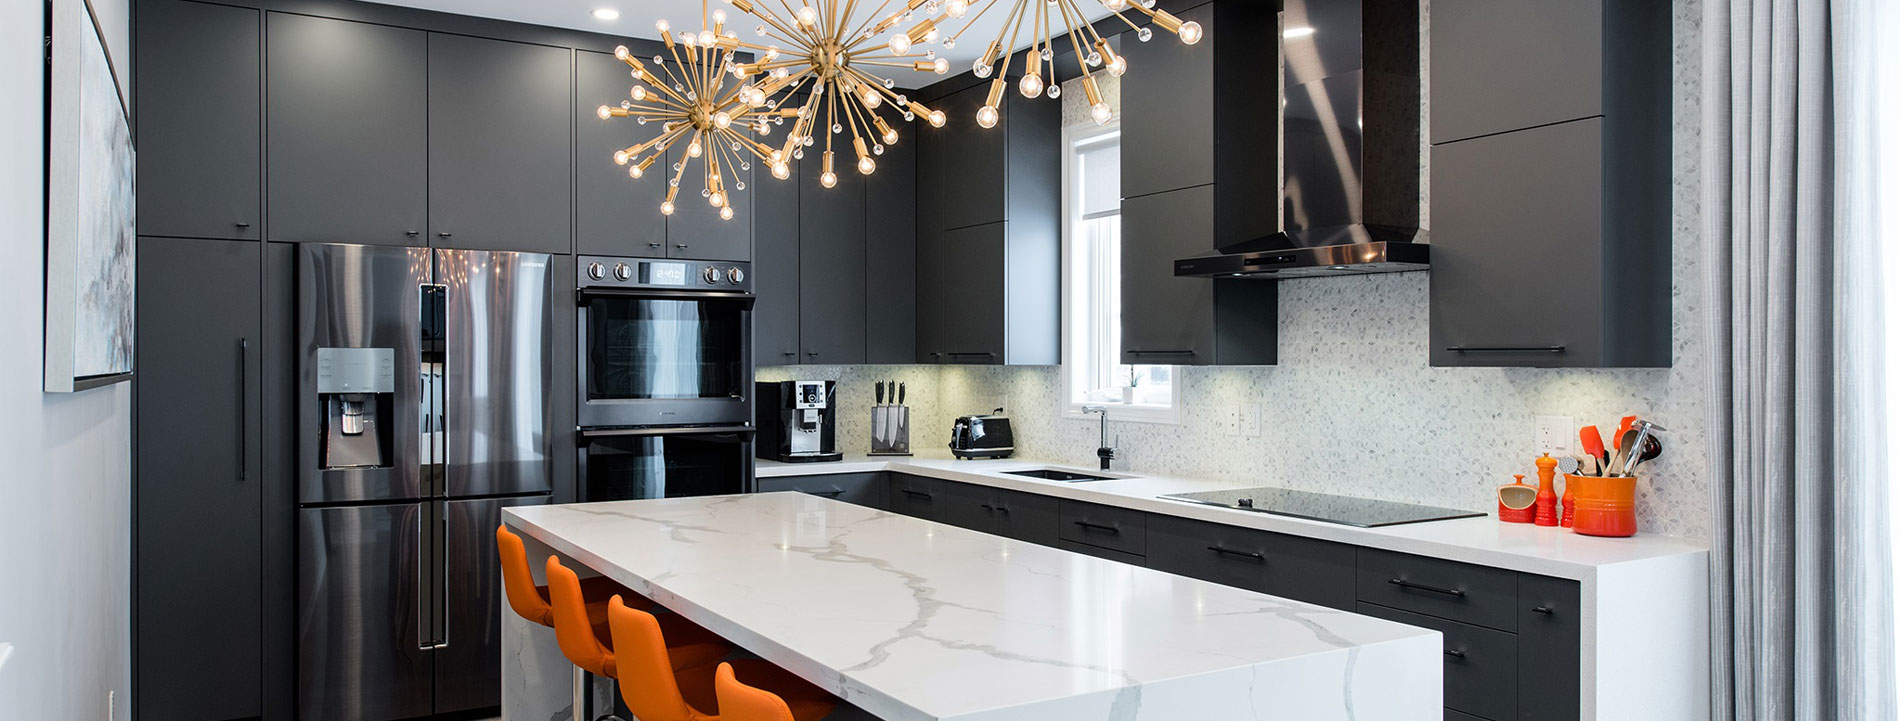 Merveilleux We Believe Bolder Colours Are Going To Be Popular Amongst Homeowners In  2018 U2013 So Say Goodbye To Neutral Tones. You Will Want To Learn ...